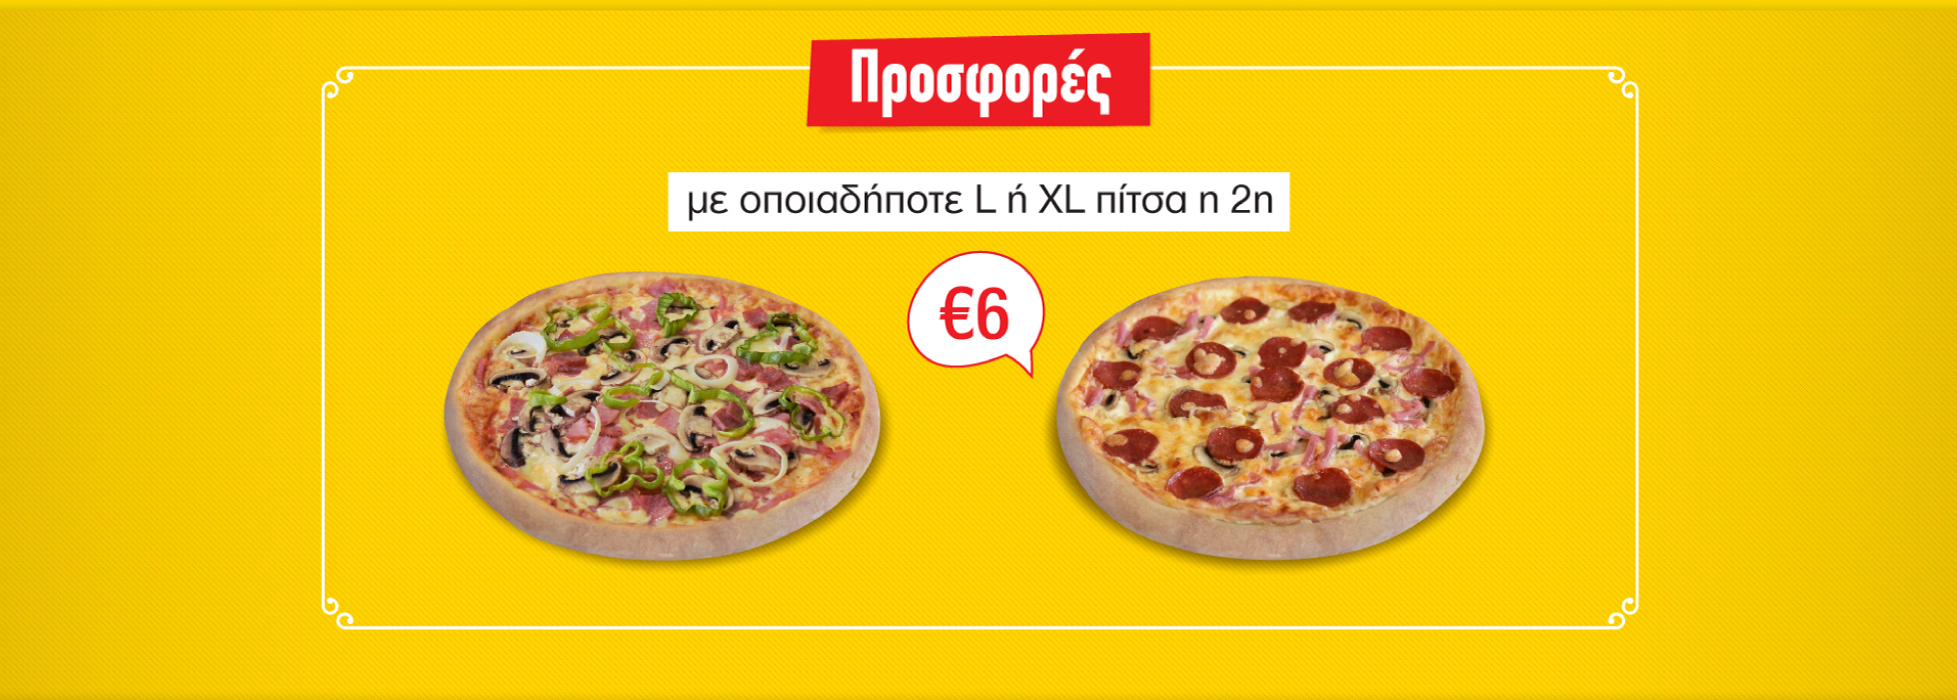 L or XL, 2nd pizza €6